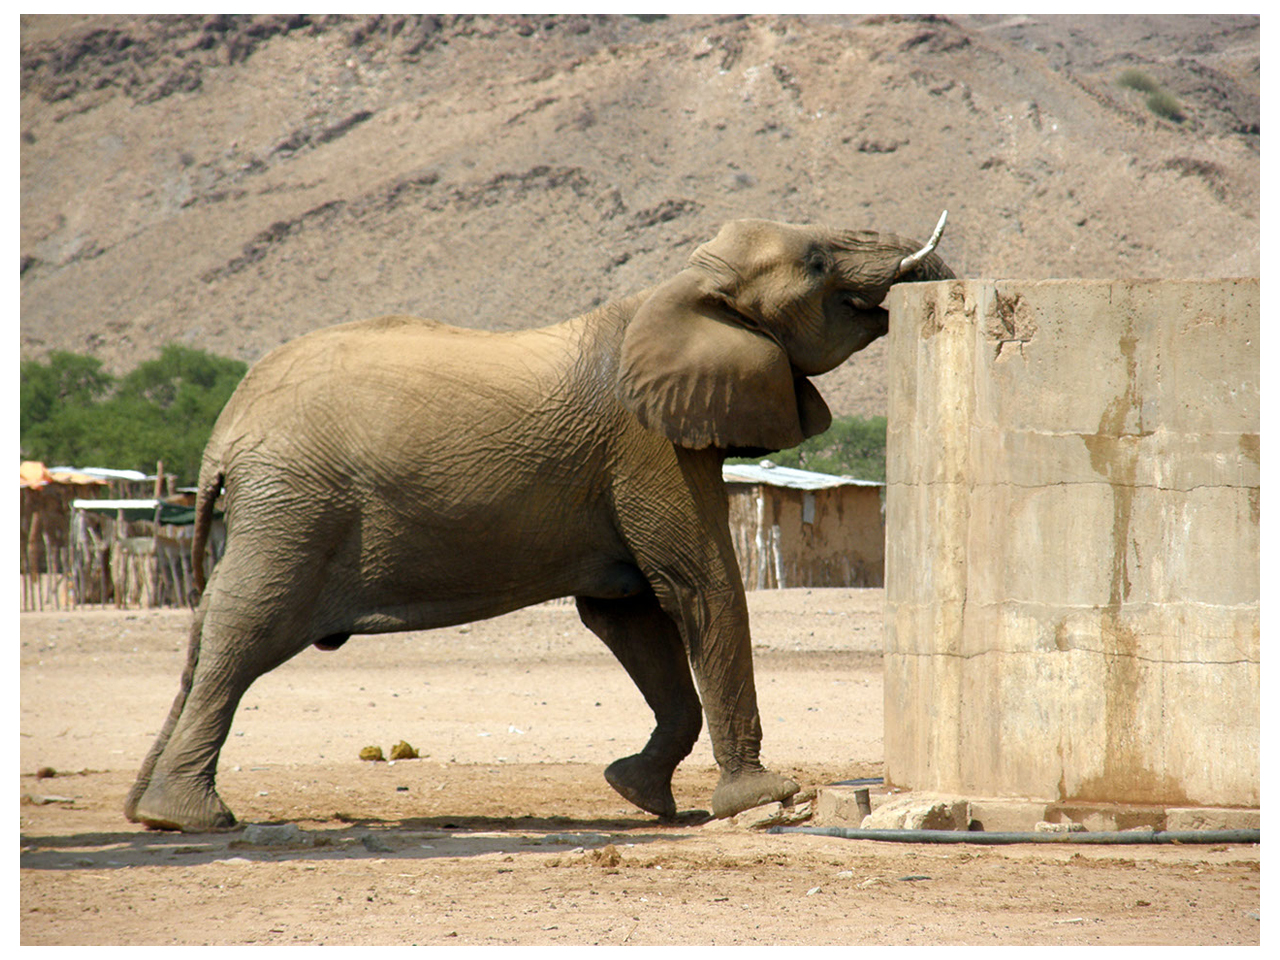 Elephant drinking from reservoir